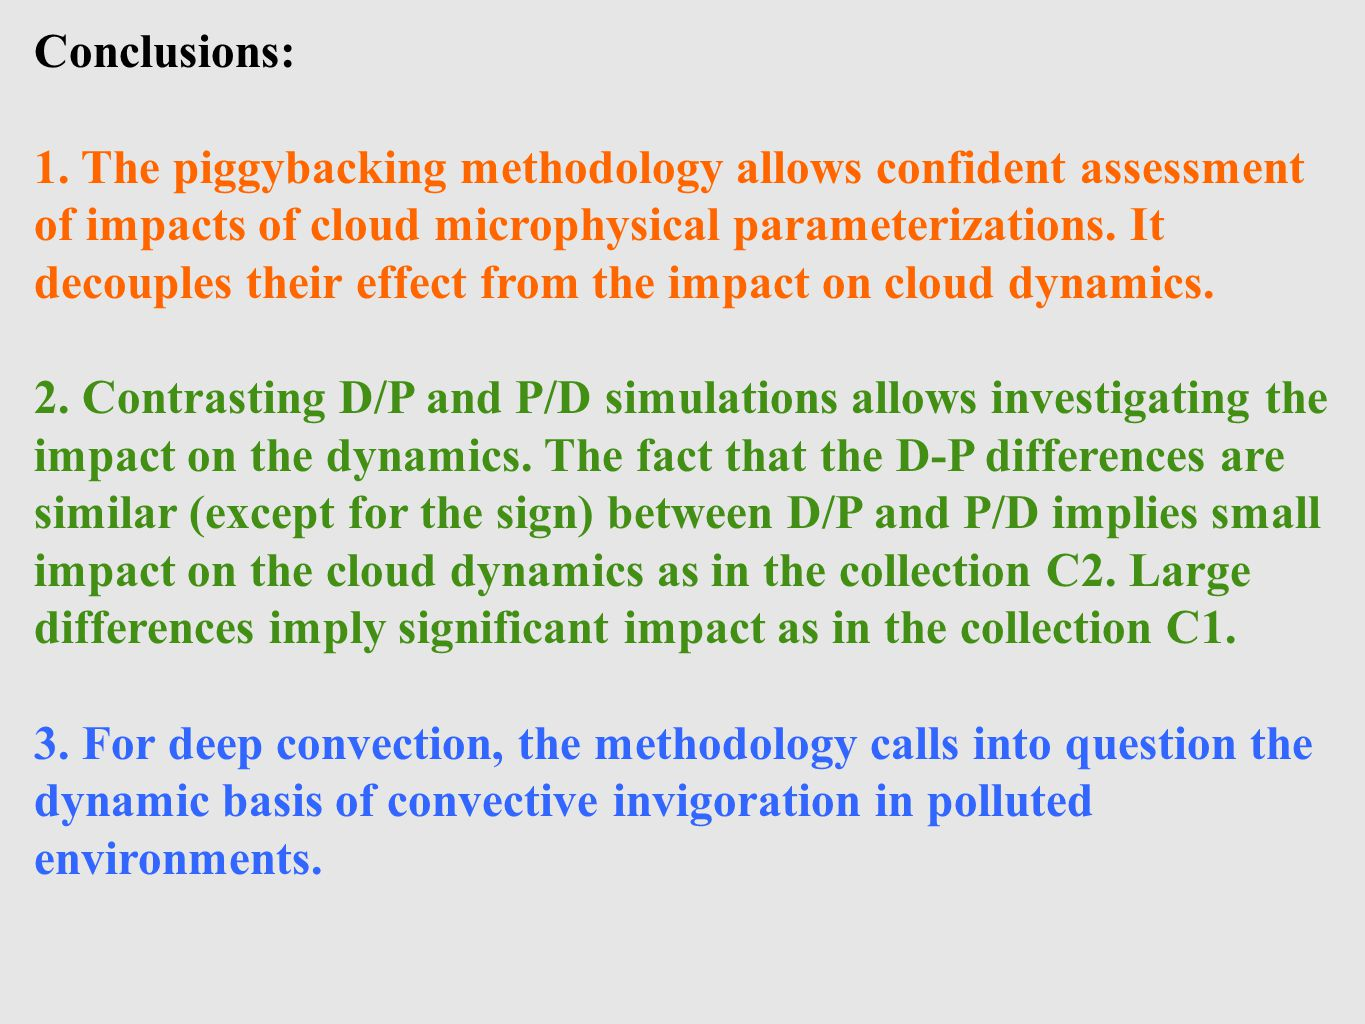 Conclusions: 1. The piggybacking methodology allows confident assessment of impacts of cloud microphysical parameterizations. It decouples their effec